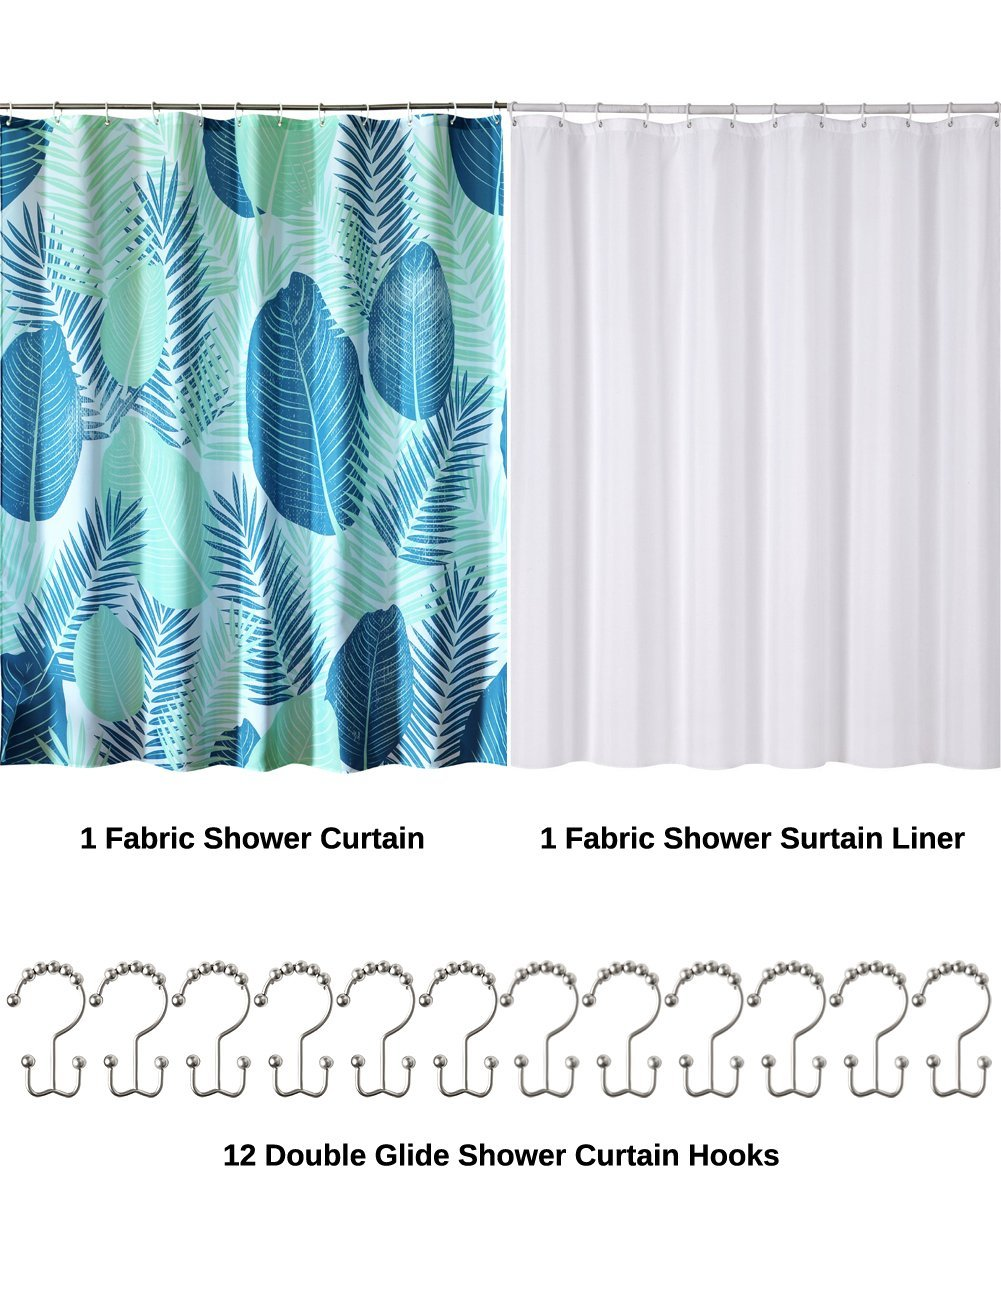 Kingmily Shower Curtain Set - Fabric Shower Curtain (Green Fan Leaves) and Shower Curtain Liner (White Fabric) and 12 Shower Curtain Hooks (72-by-78 inches, set 3 include Metal Double Glide hooks)